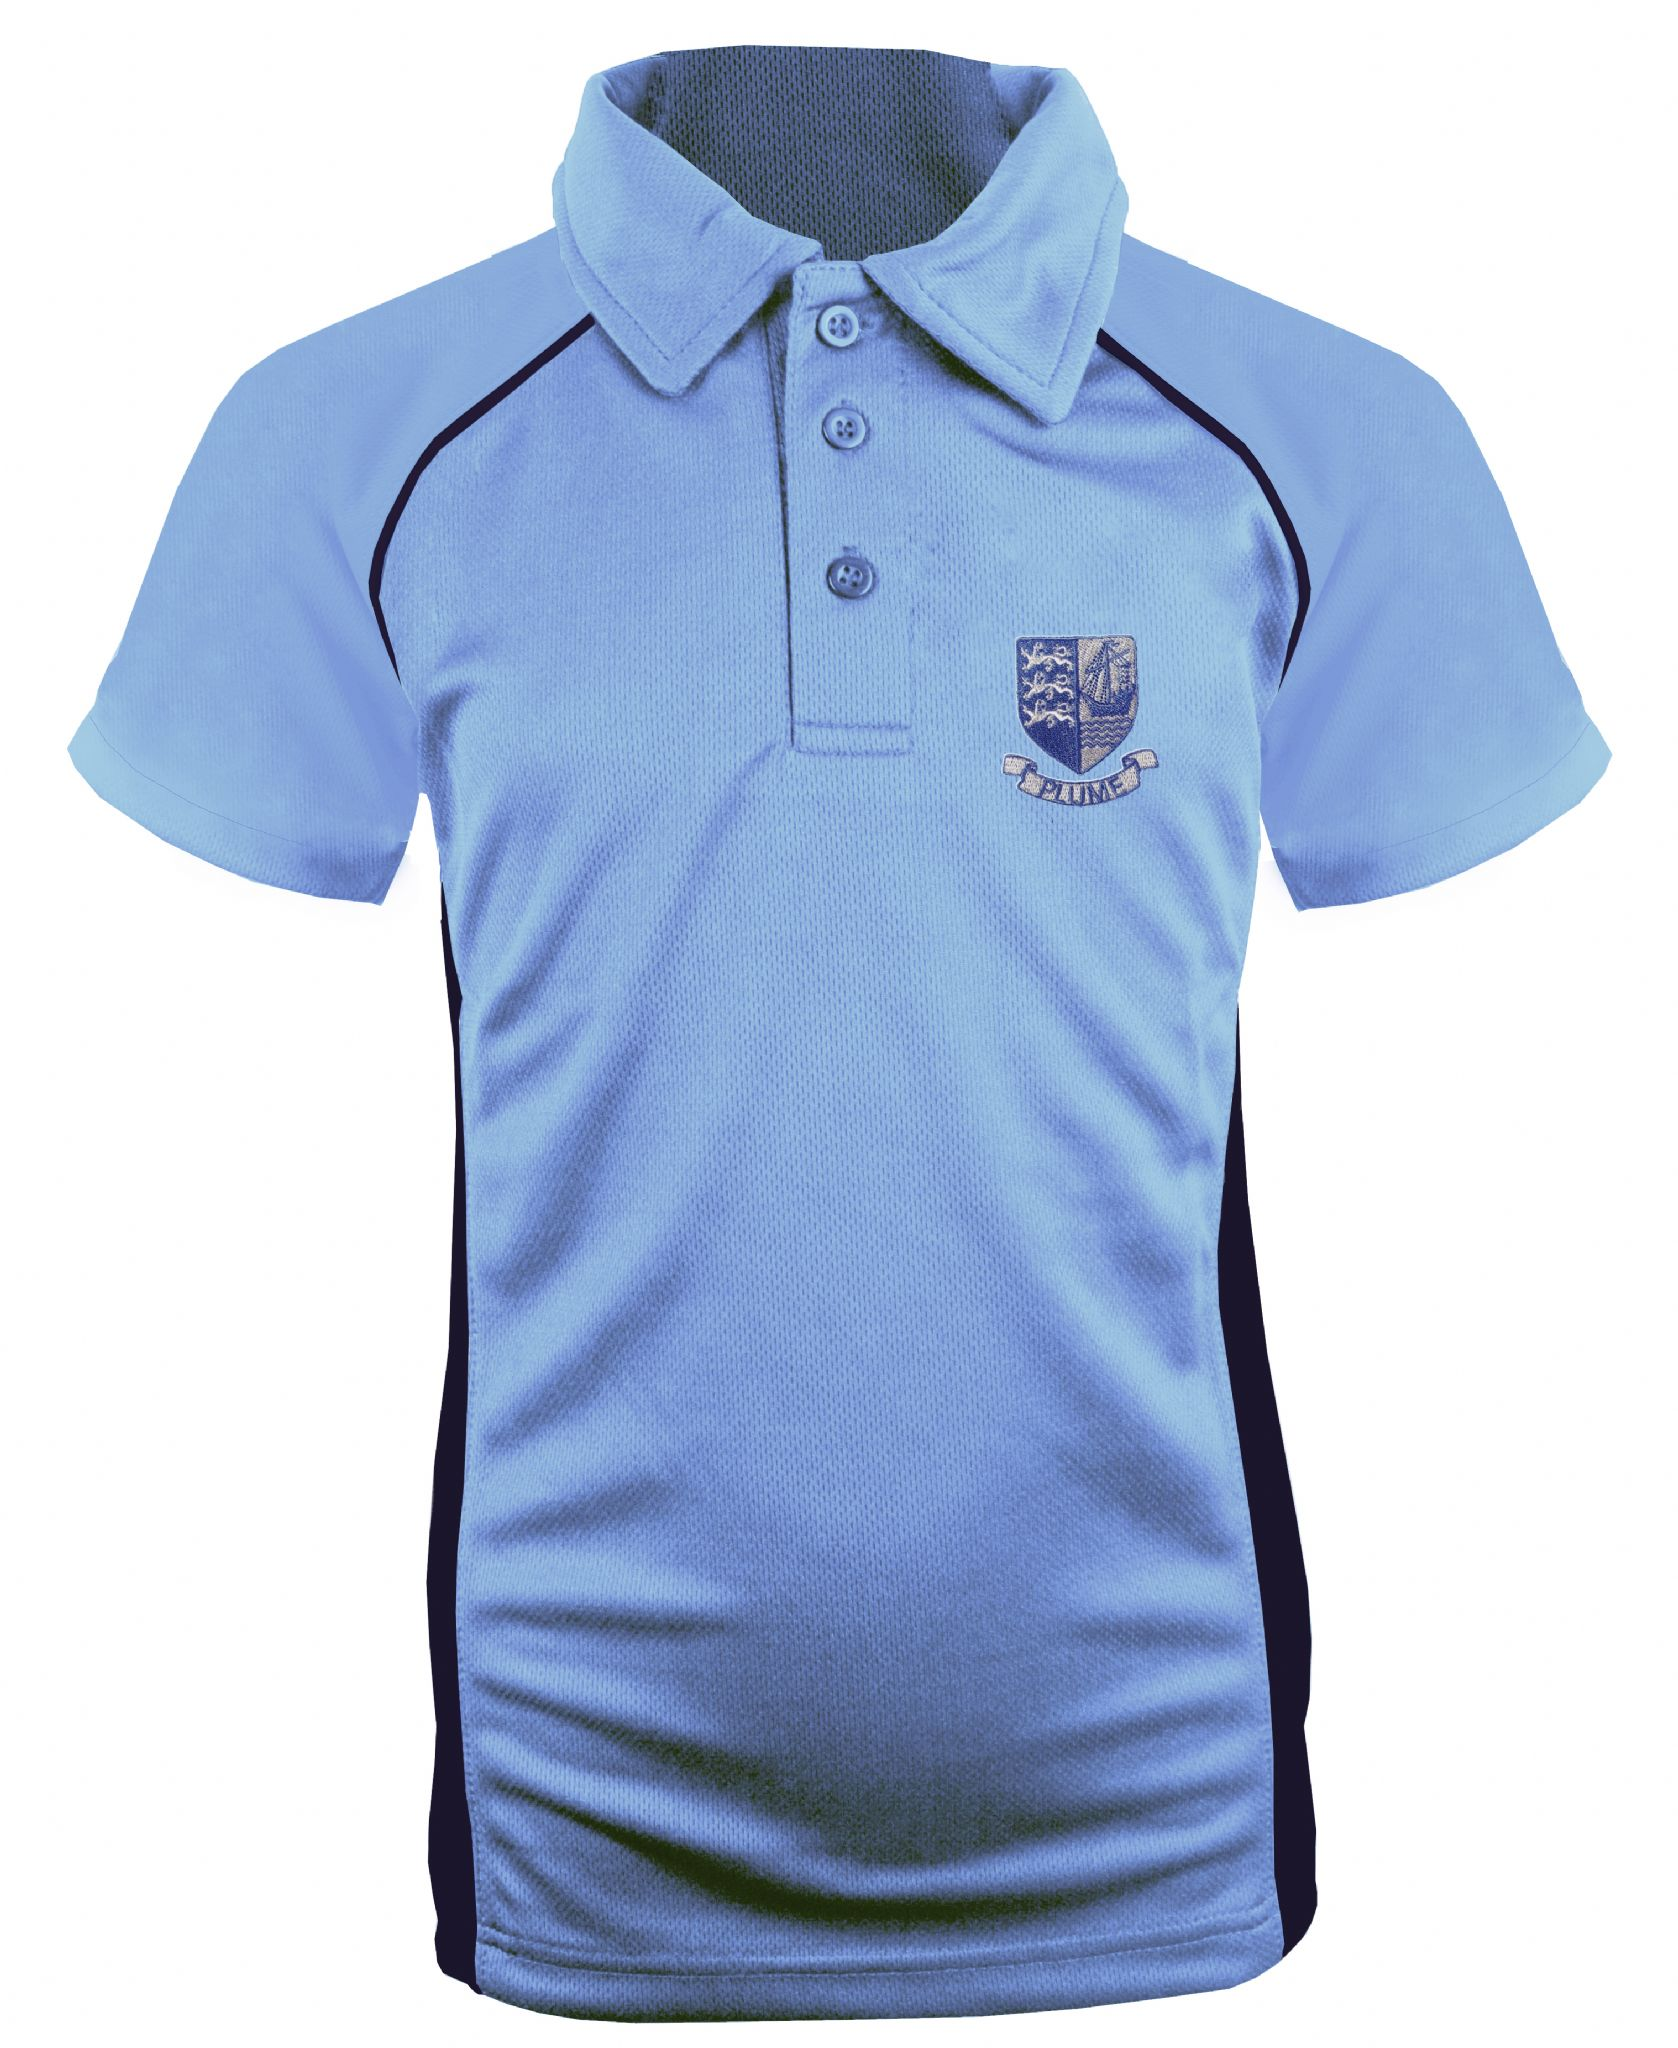 Plume School Year 7-9 Girls Fitted Sports Polo Shirt